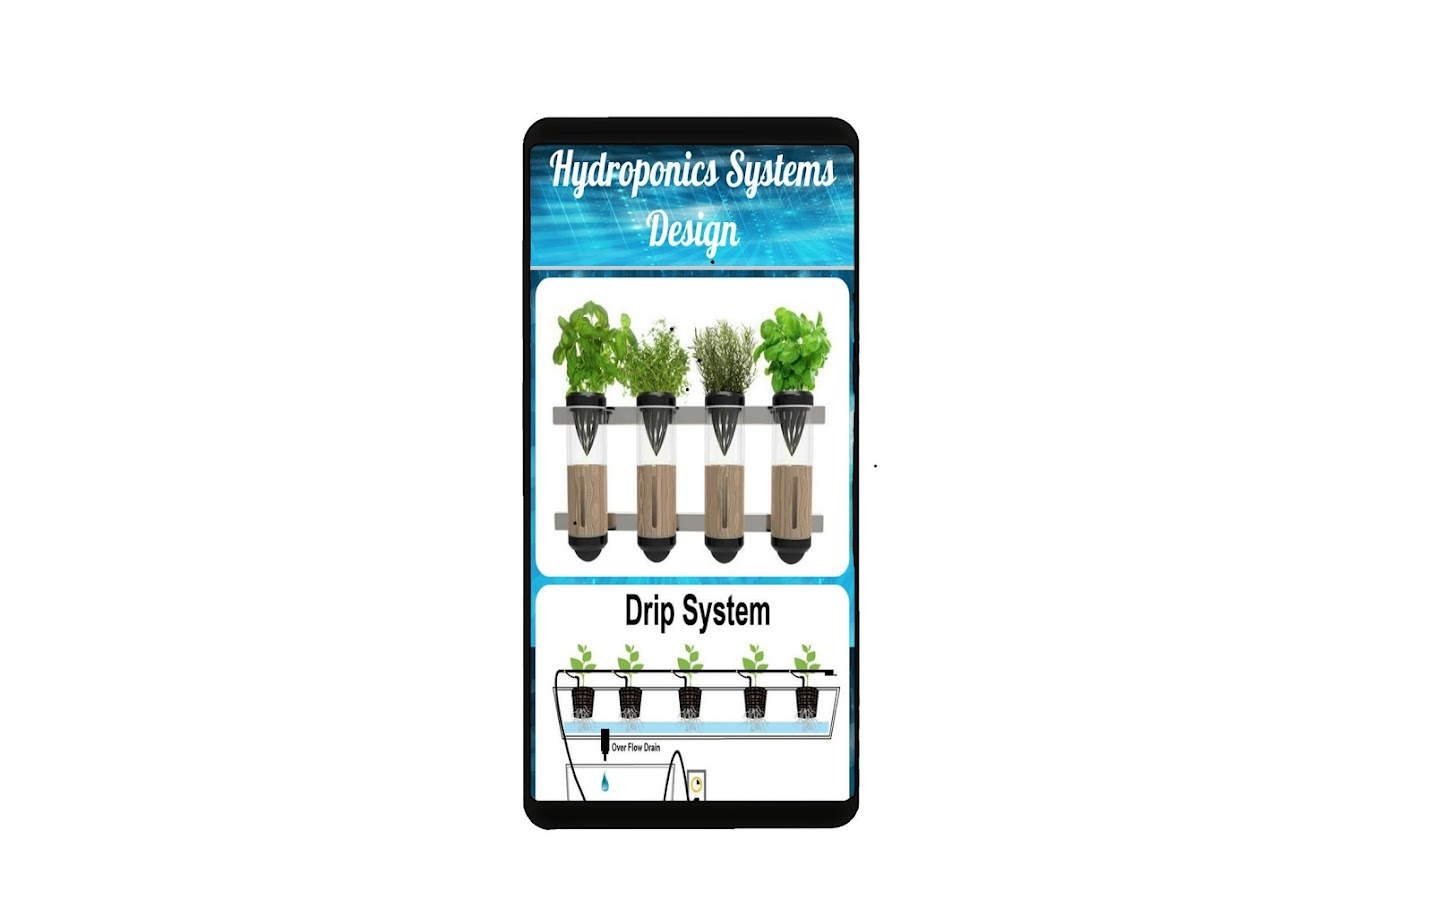 Hydroponics Systems Design 1 0 APK Download - Android Lifestyle Apps